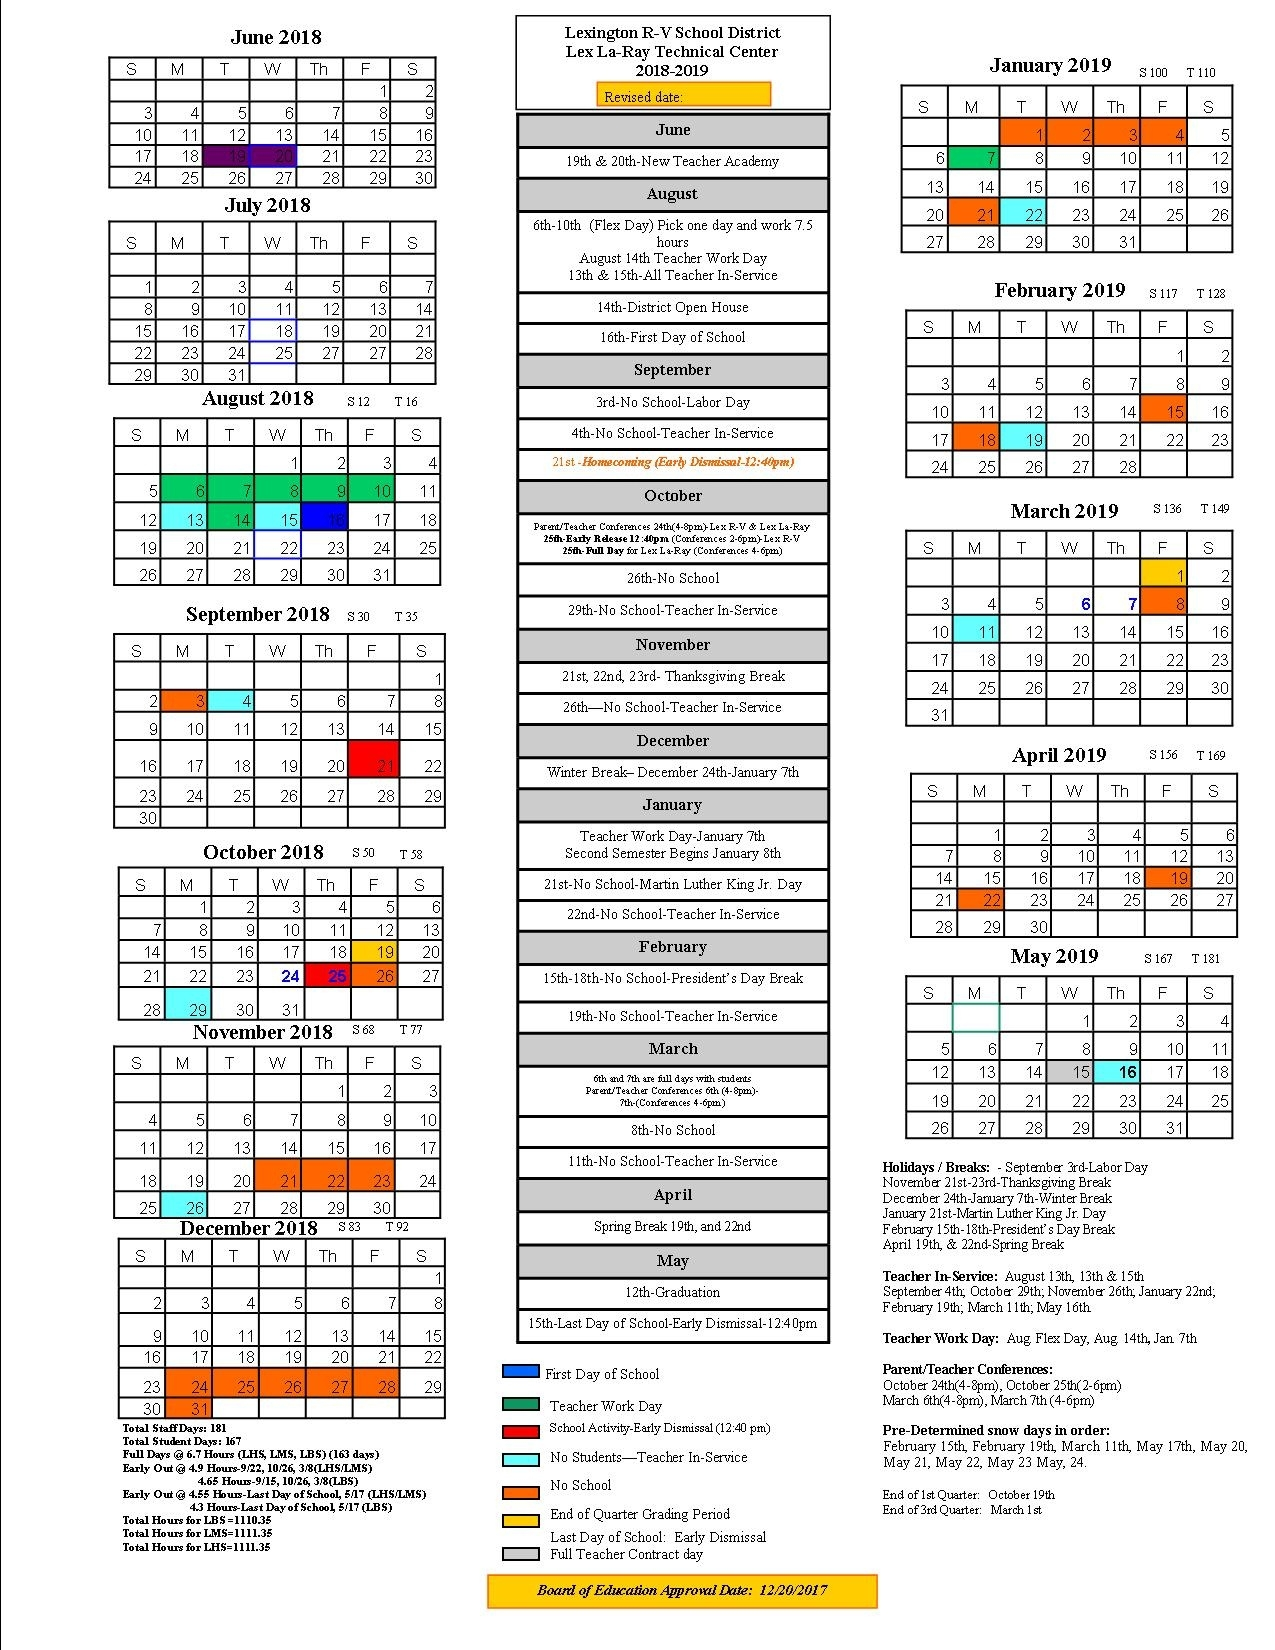 Lexington School District Calendar 2019 - Publicholidays_Lexington 5 School Calendar